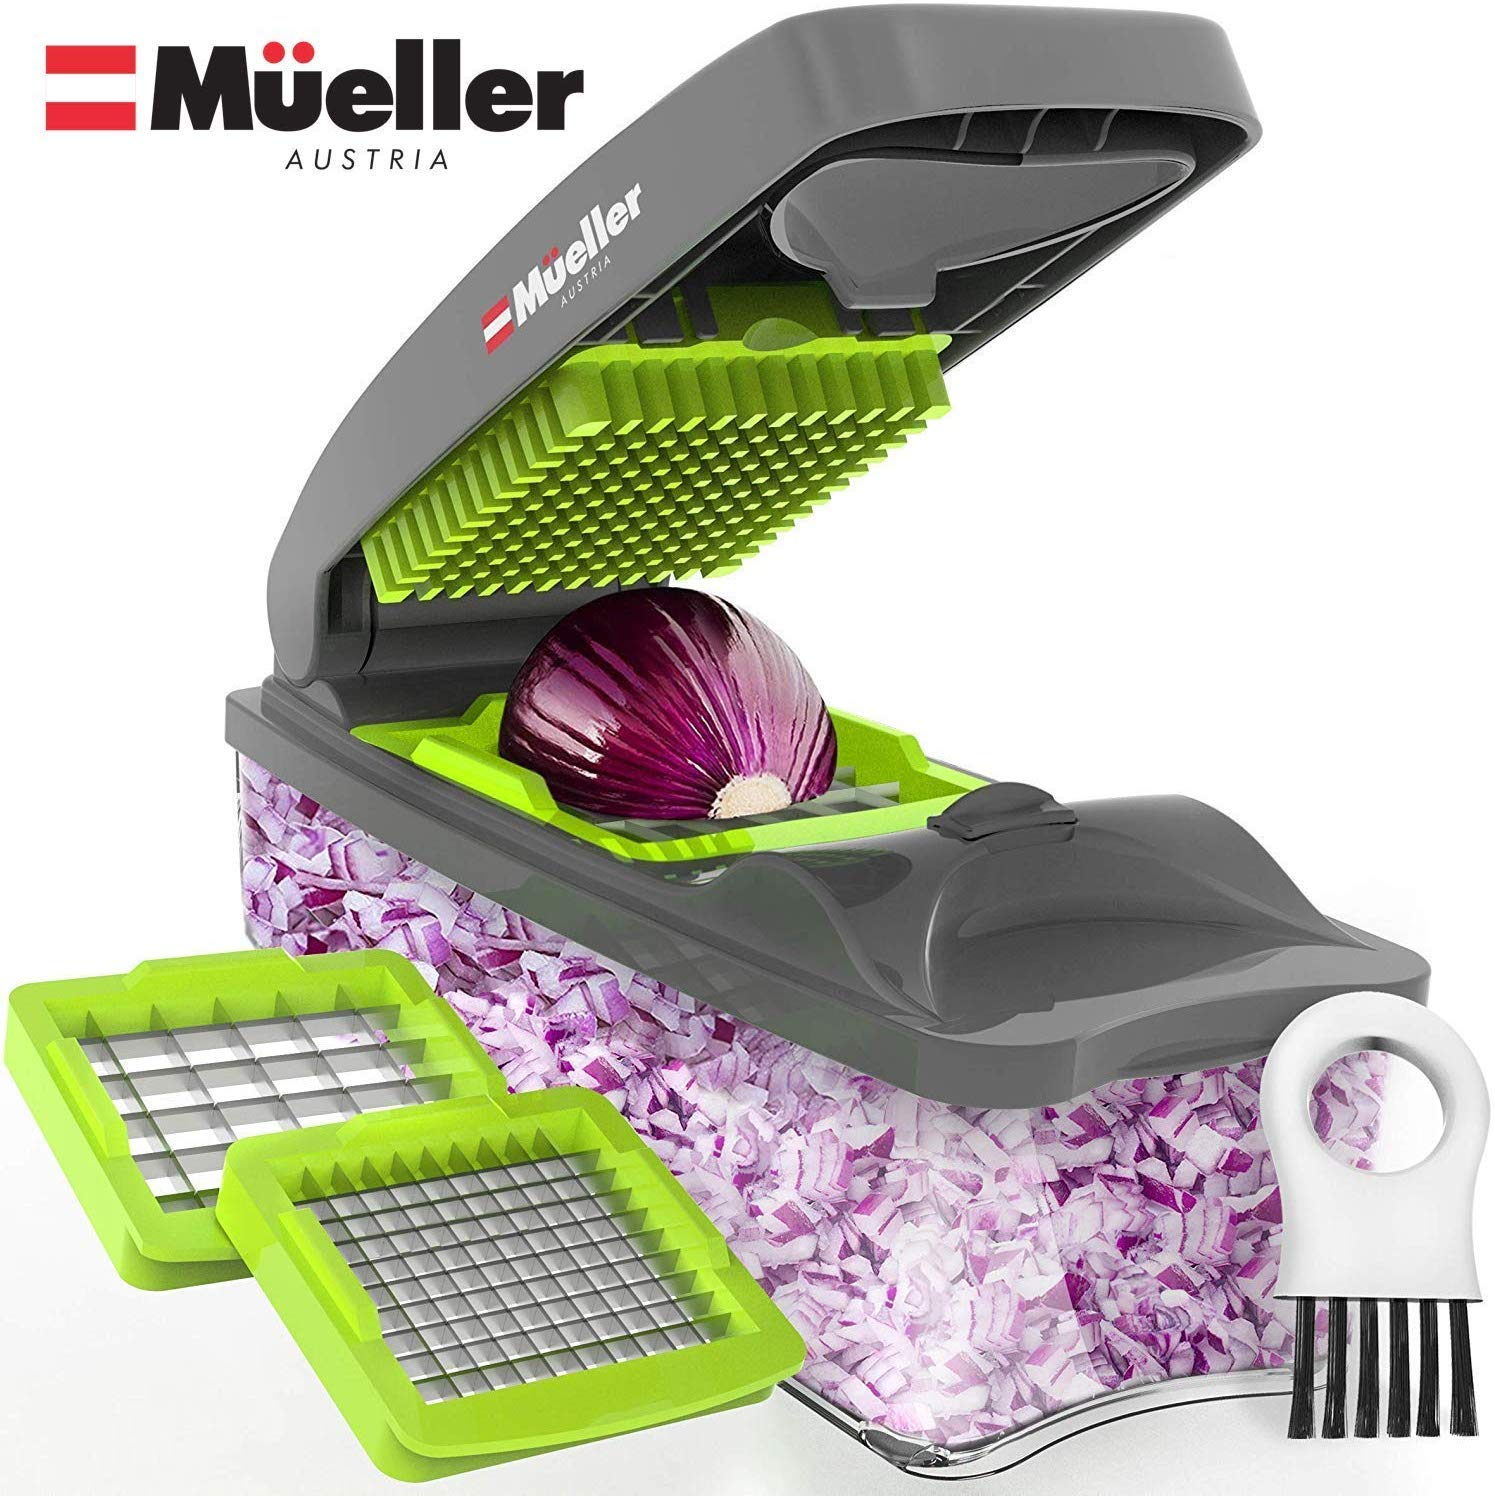 Chopper Vegetable Mueller Vegetable Fruit Cheese Onion Chopper Dicer Kitchen